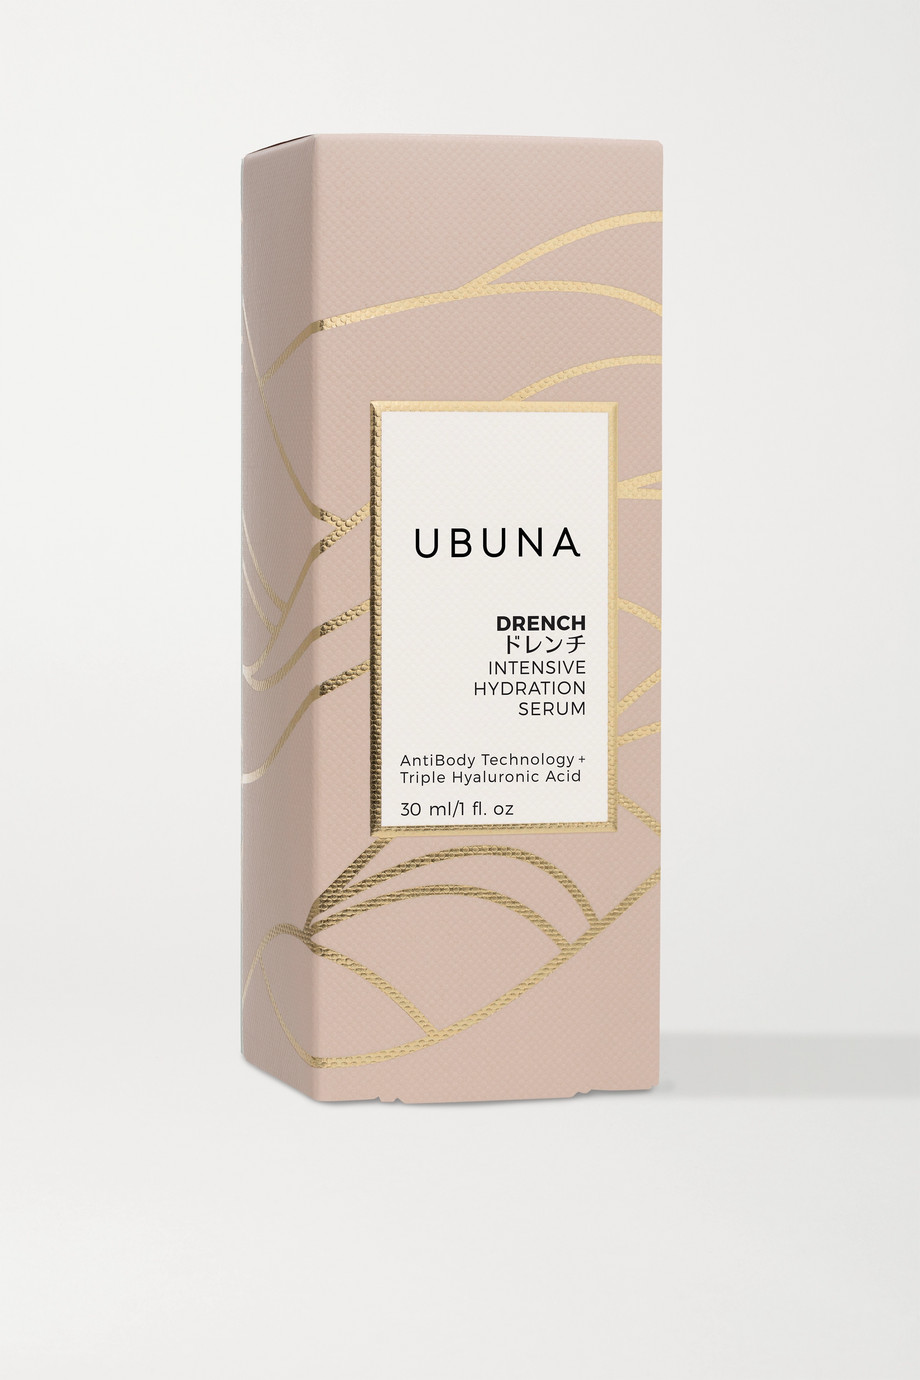 UBUNA BEAUTY Drench Intensive Hydration Serum, 30ml